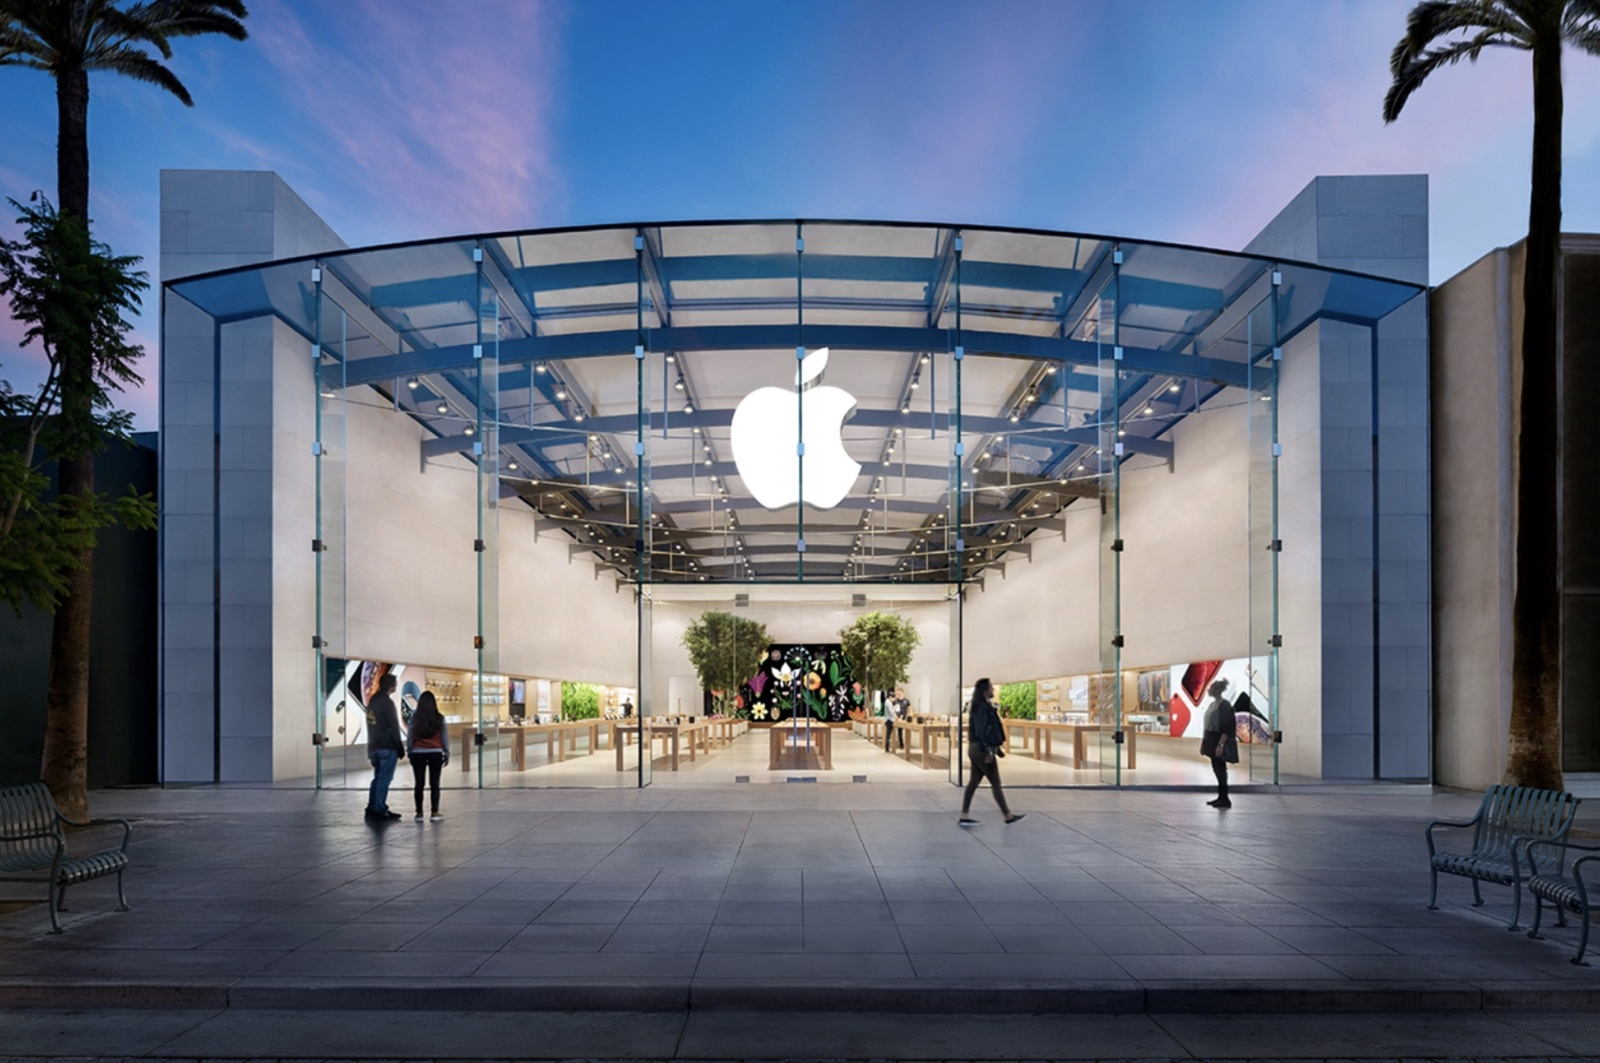 Apple Store Employee on Leave in Santa Monica Contracts COVID-19